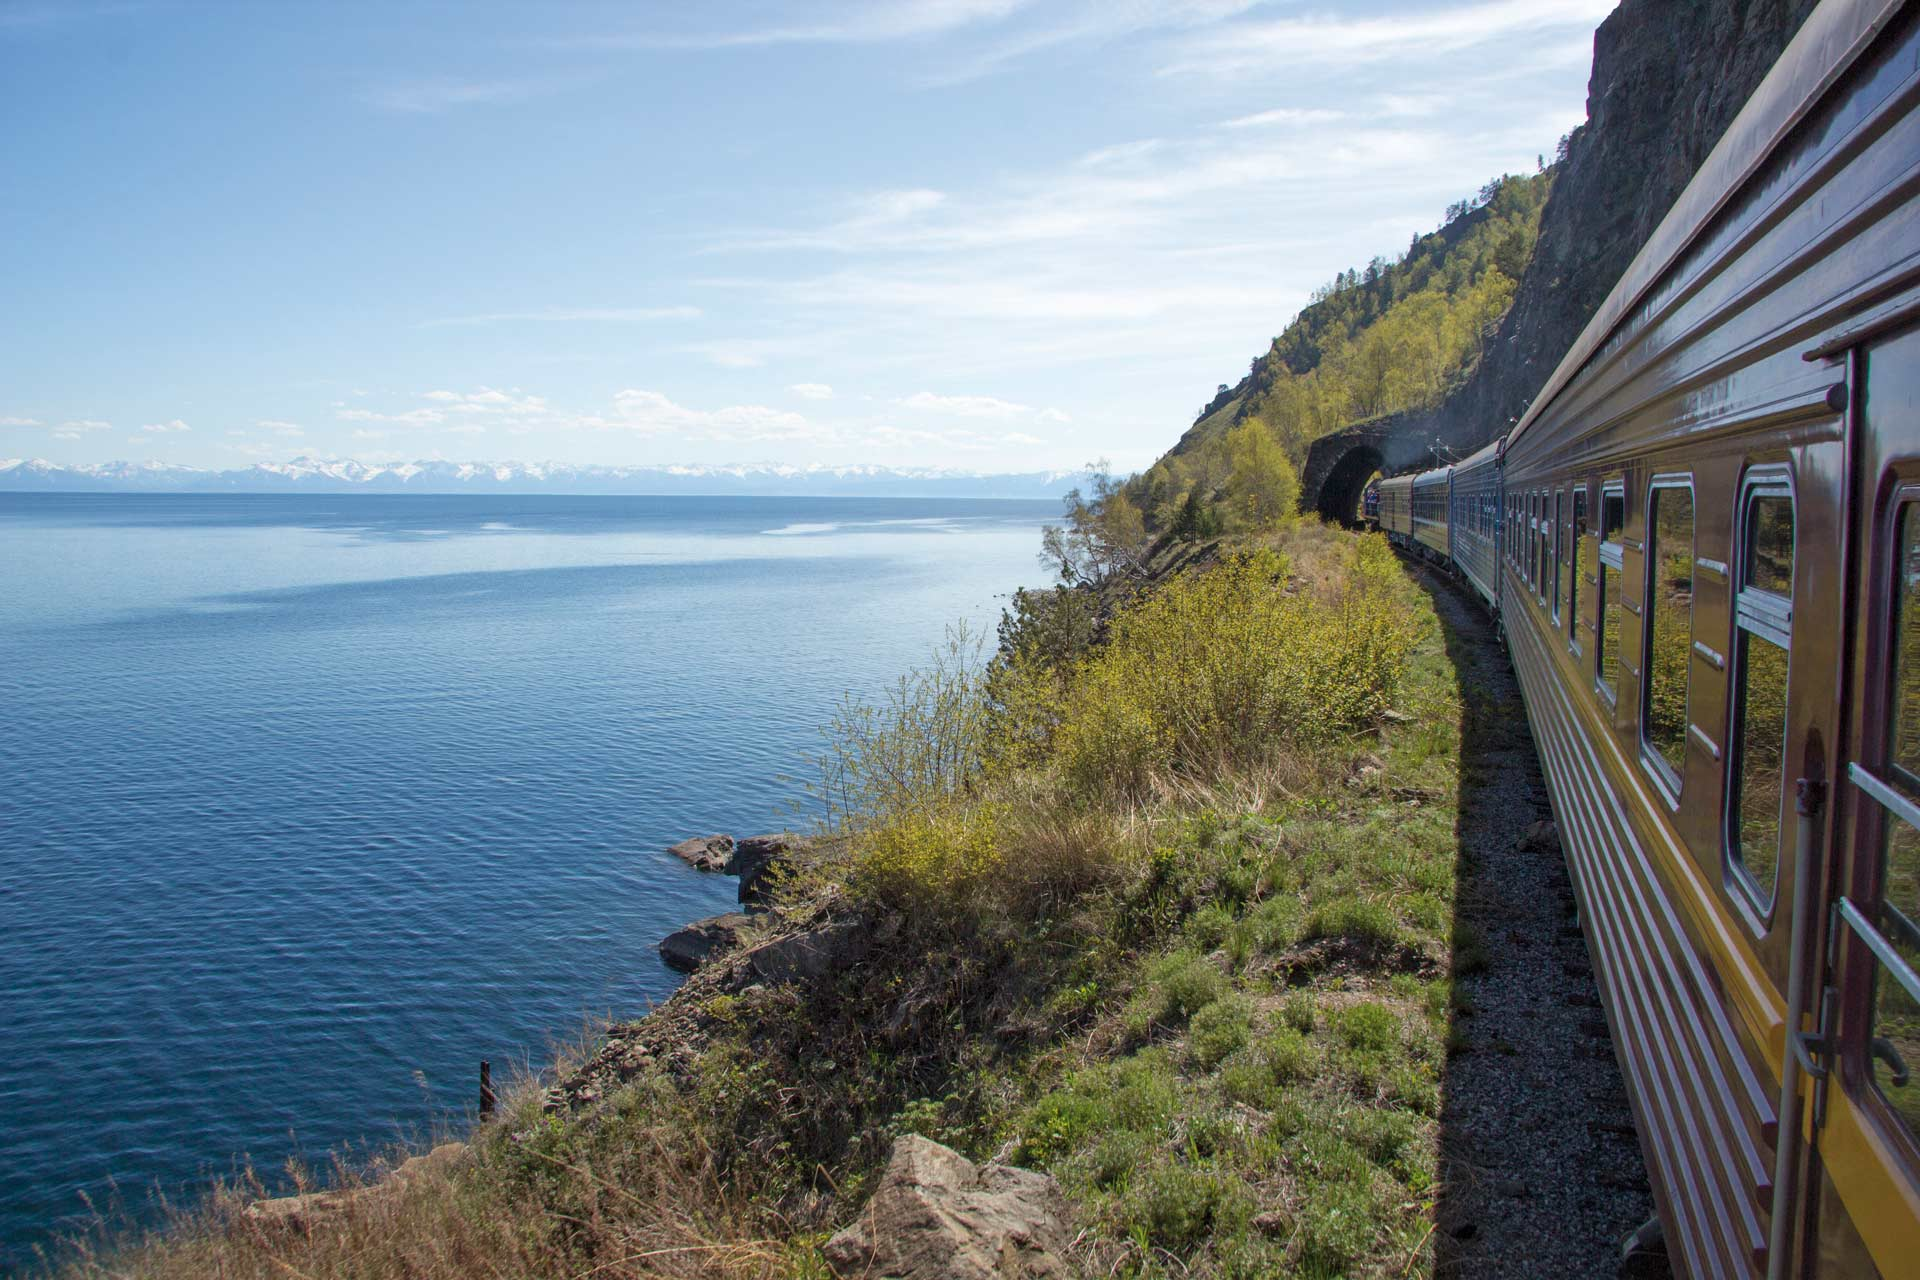 Trans-Siberian Railway, coast of Lake Baikal. Train movement along the lake shore